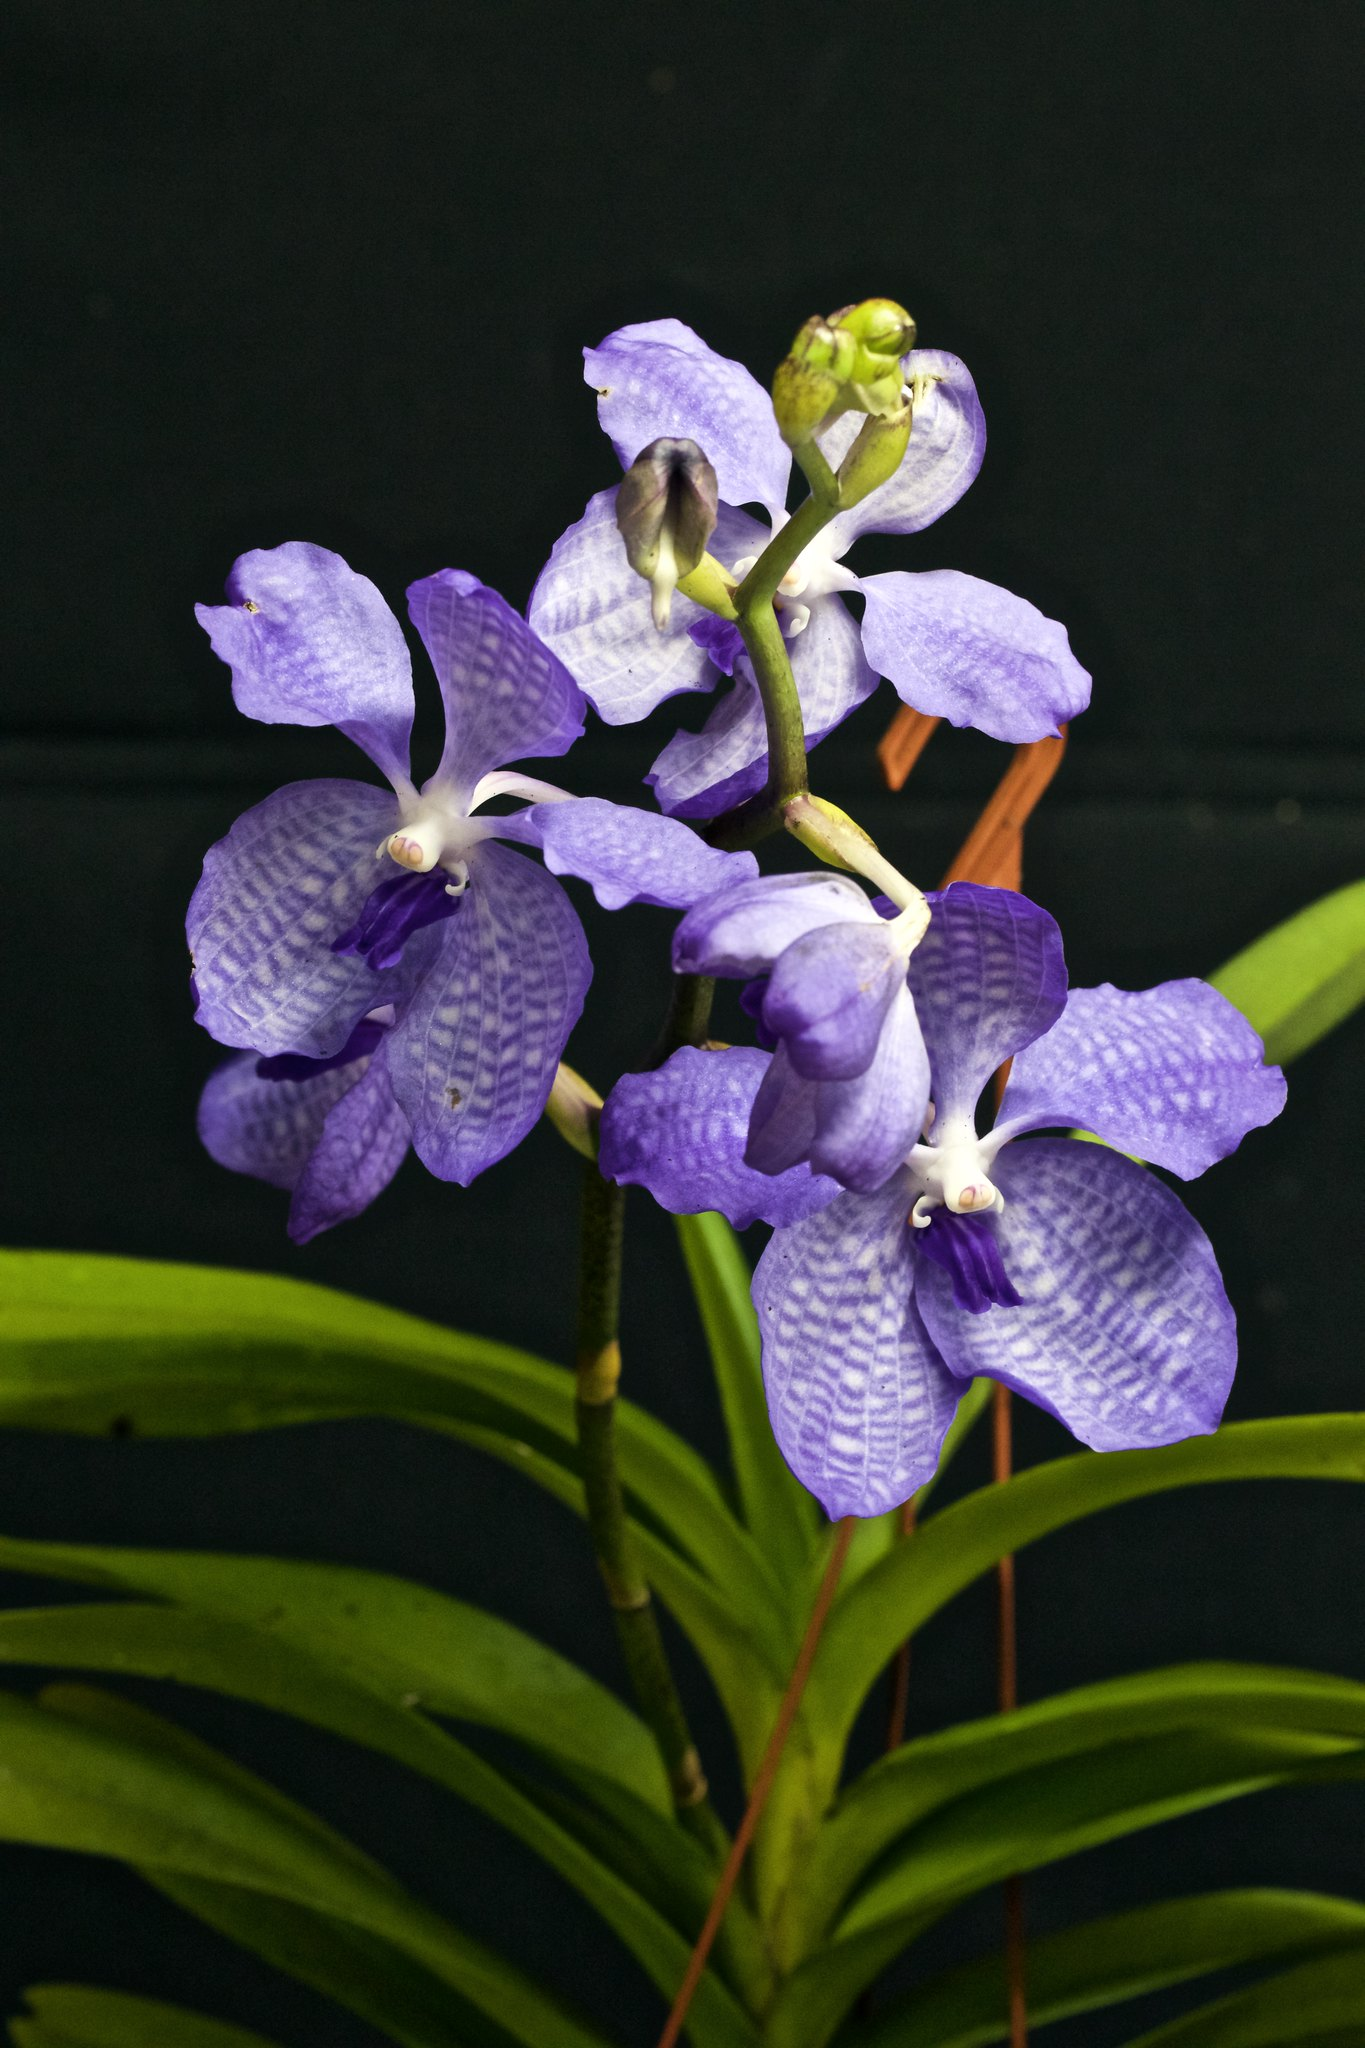 Vanda Coerulea (News photos) 20226648723_45eefb89d1_k